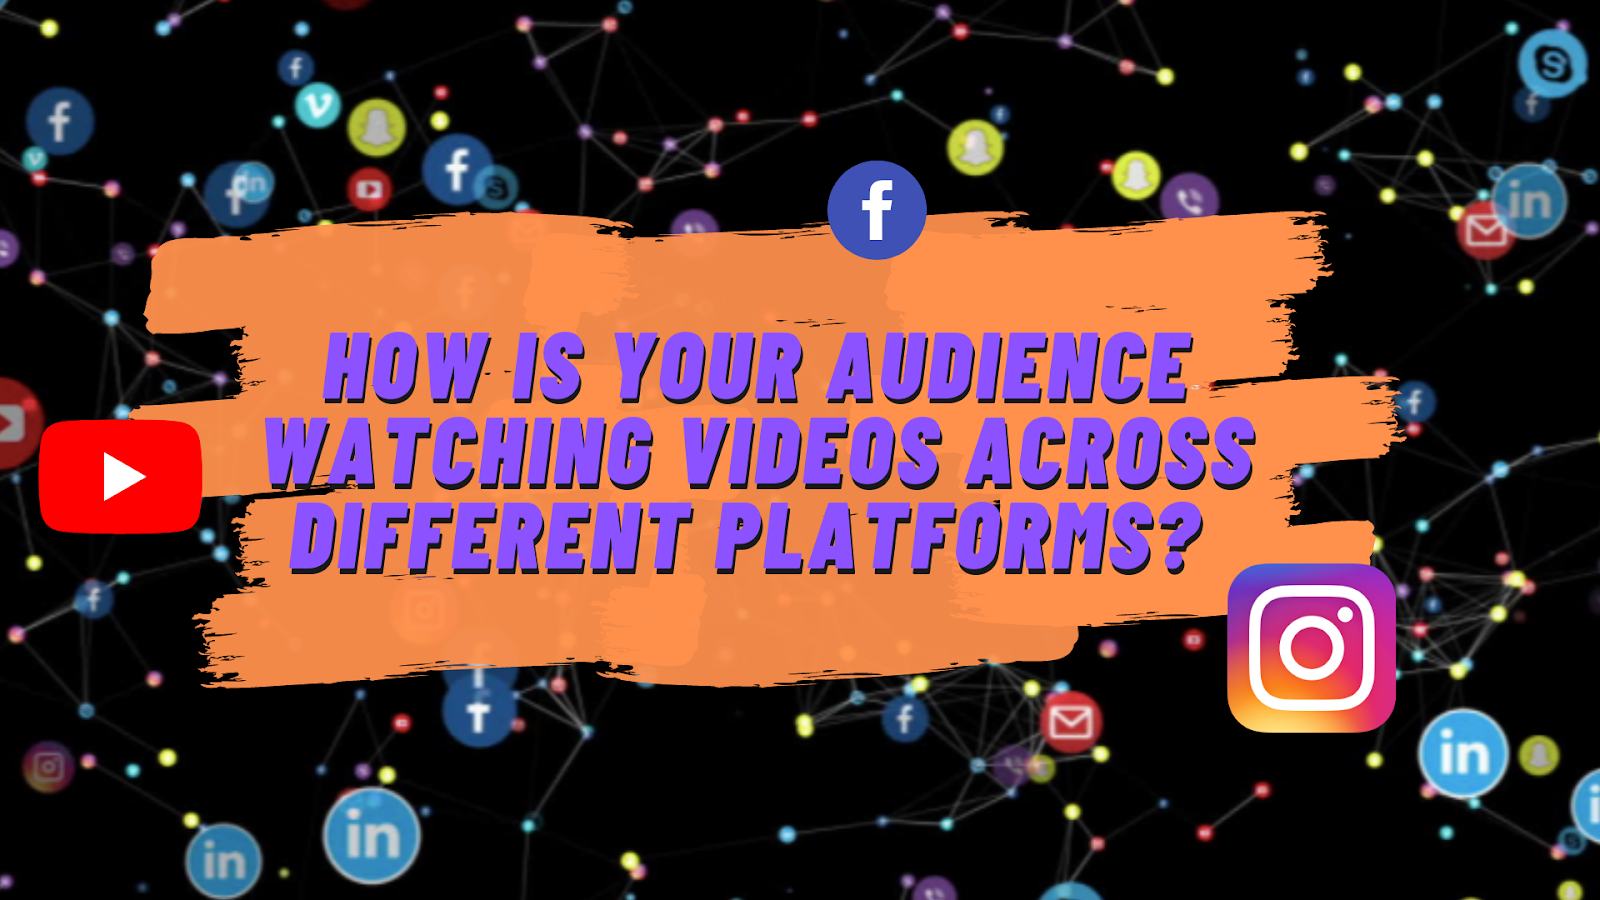 How is your audience watching videos across different platforms?